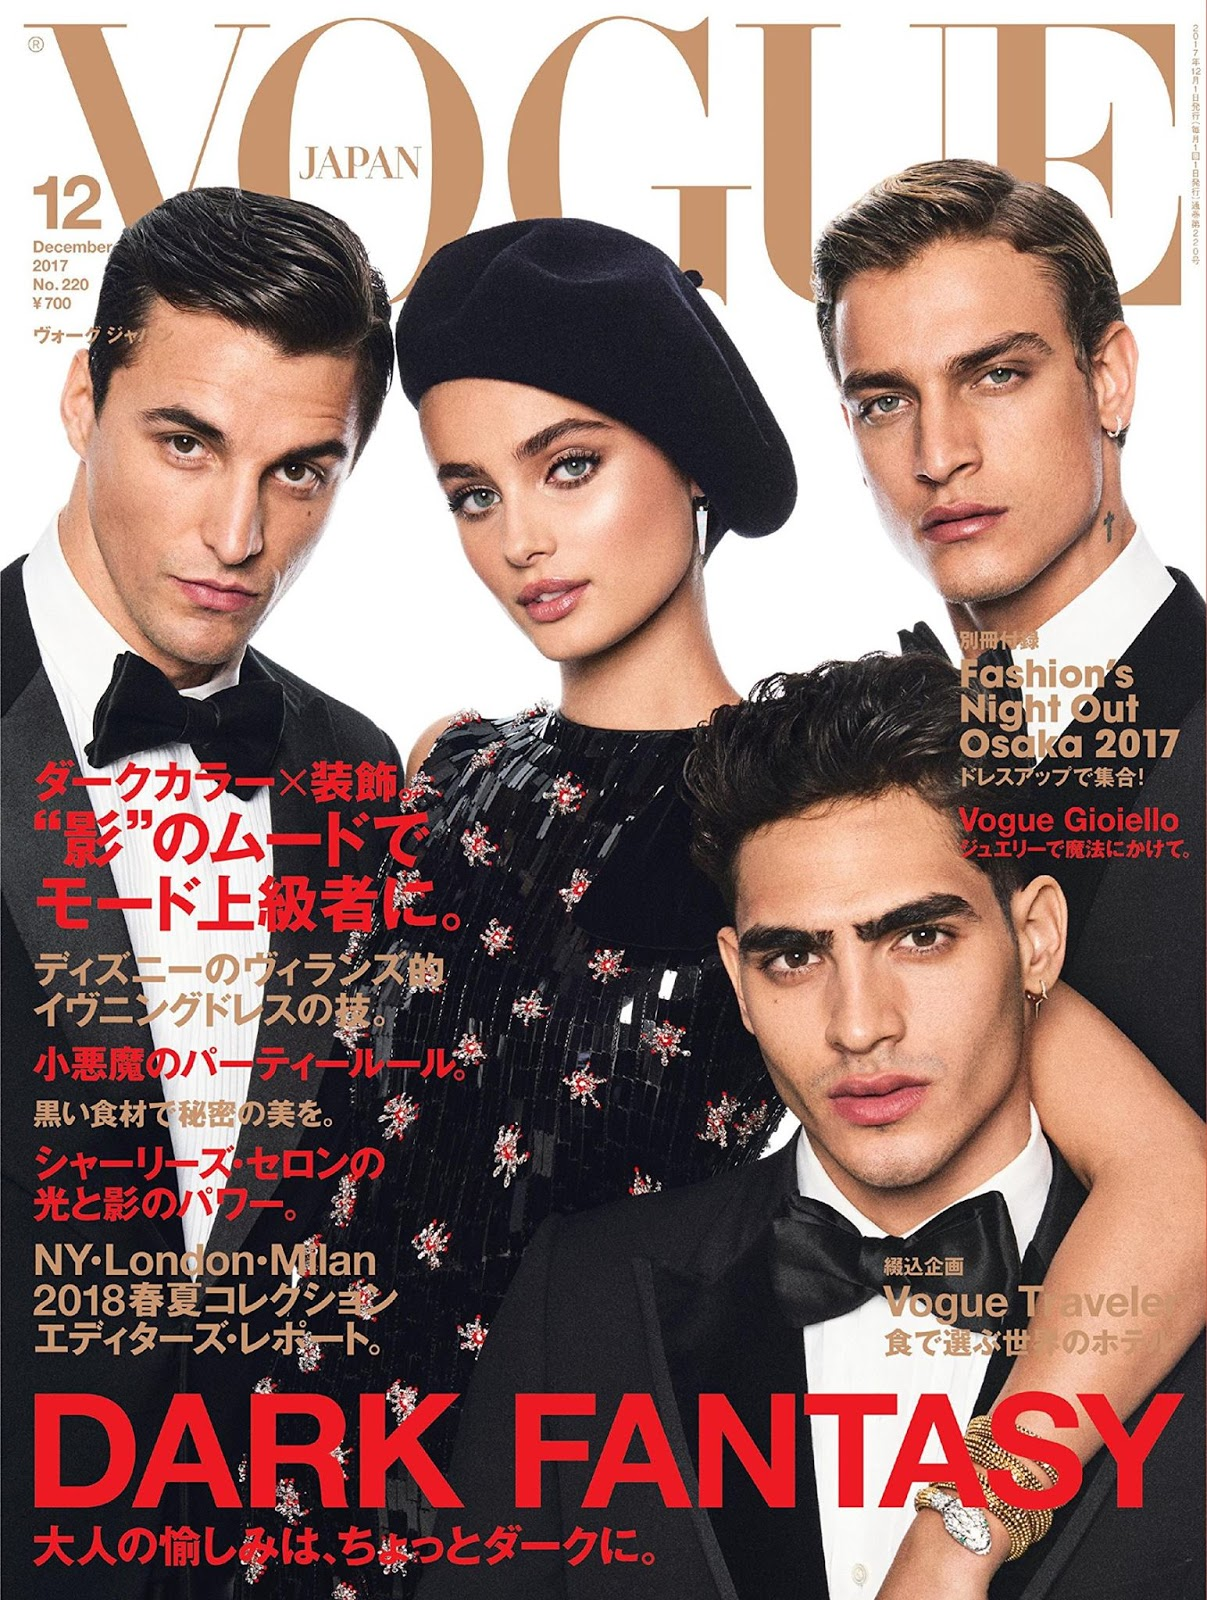 Vogue Japan December 2017 Nikolai, Taylor & Jhona by Giampaolo Sgura